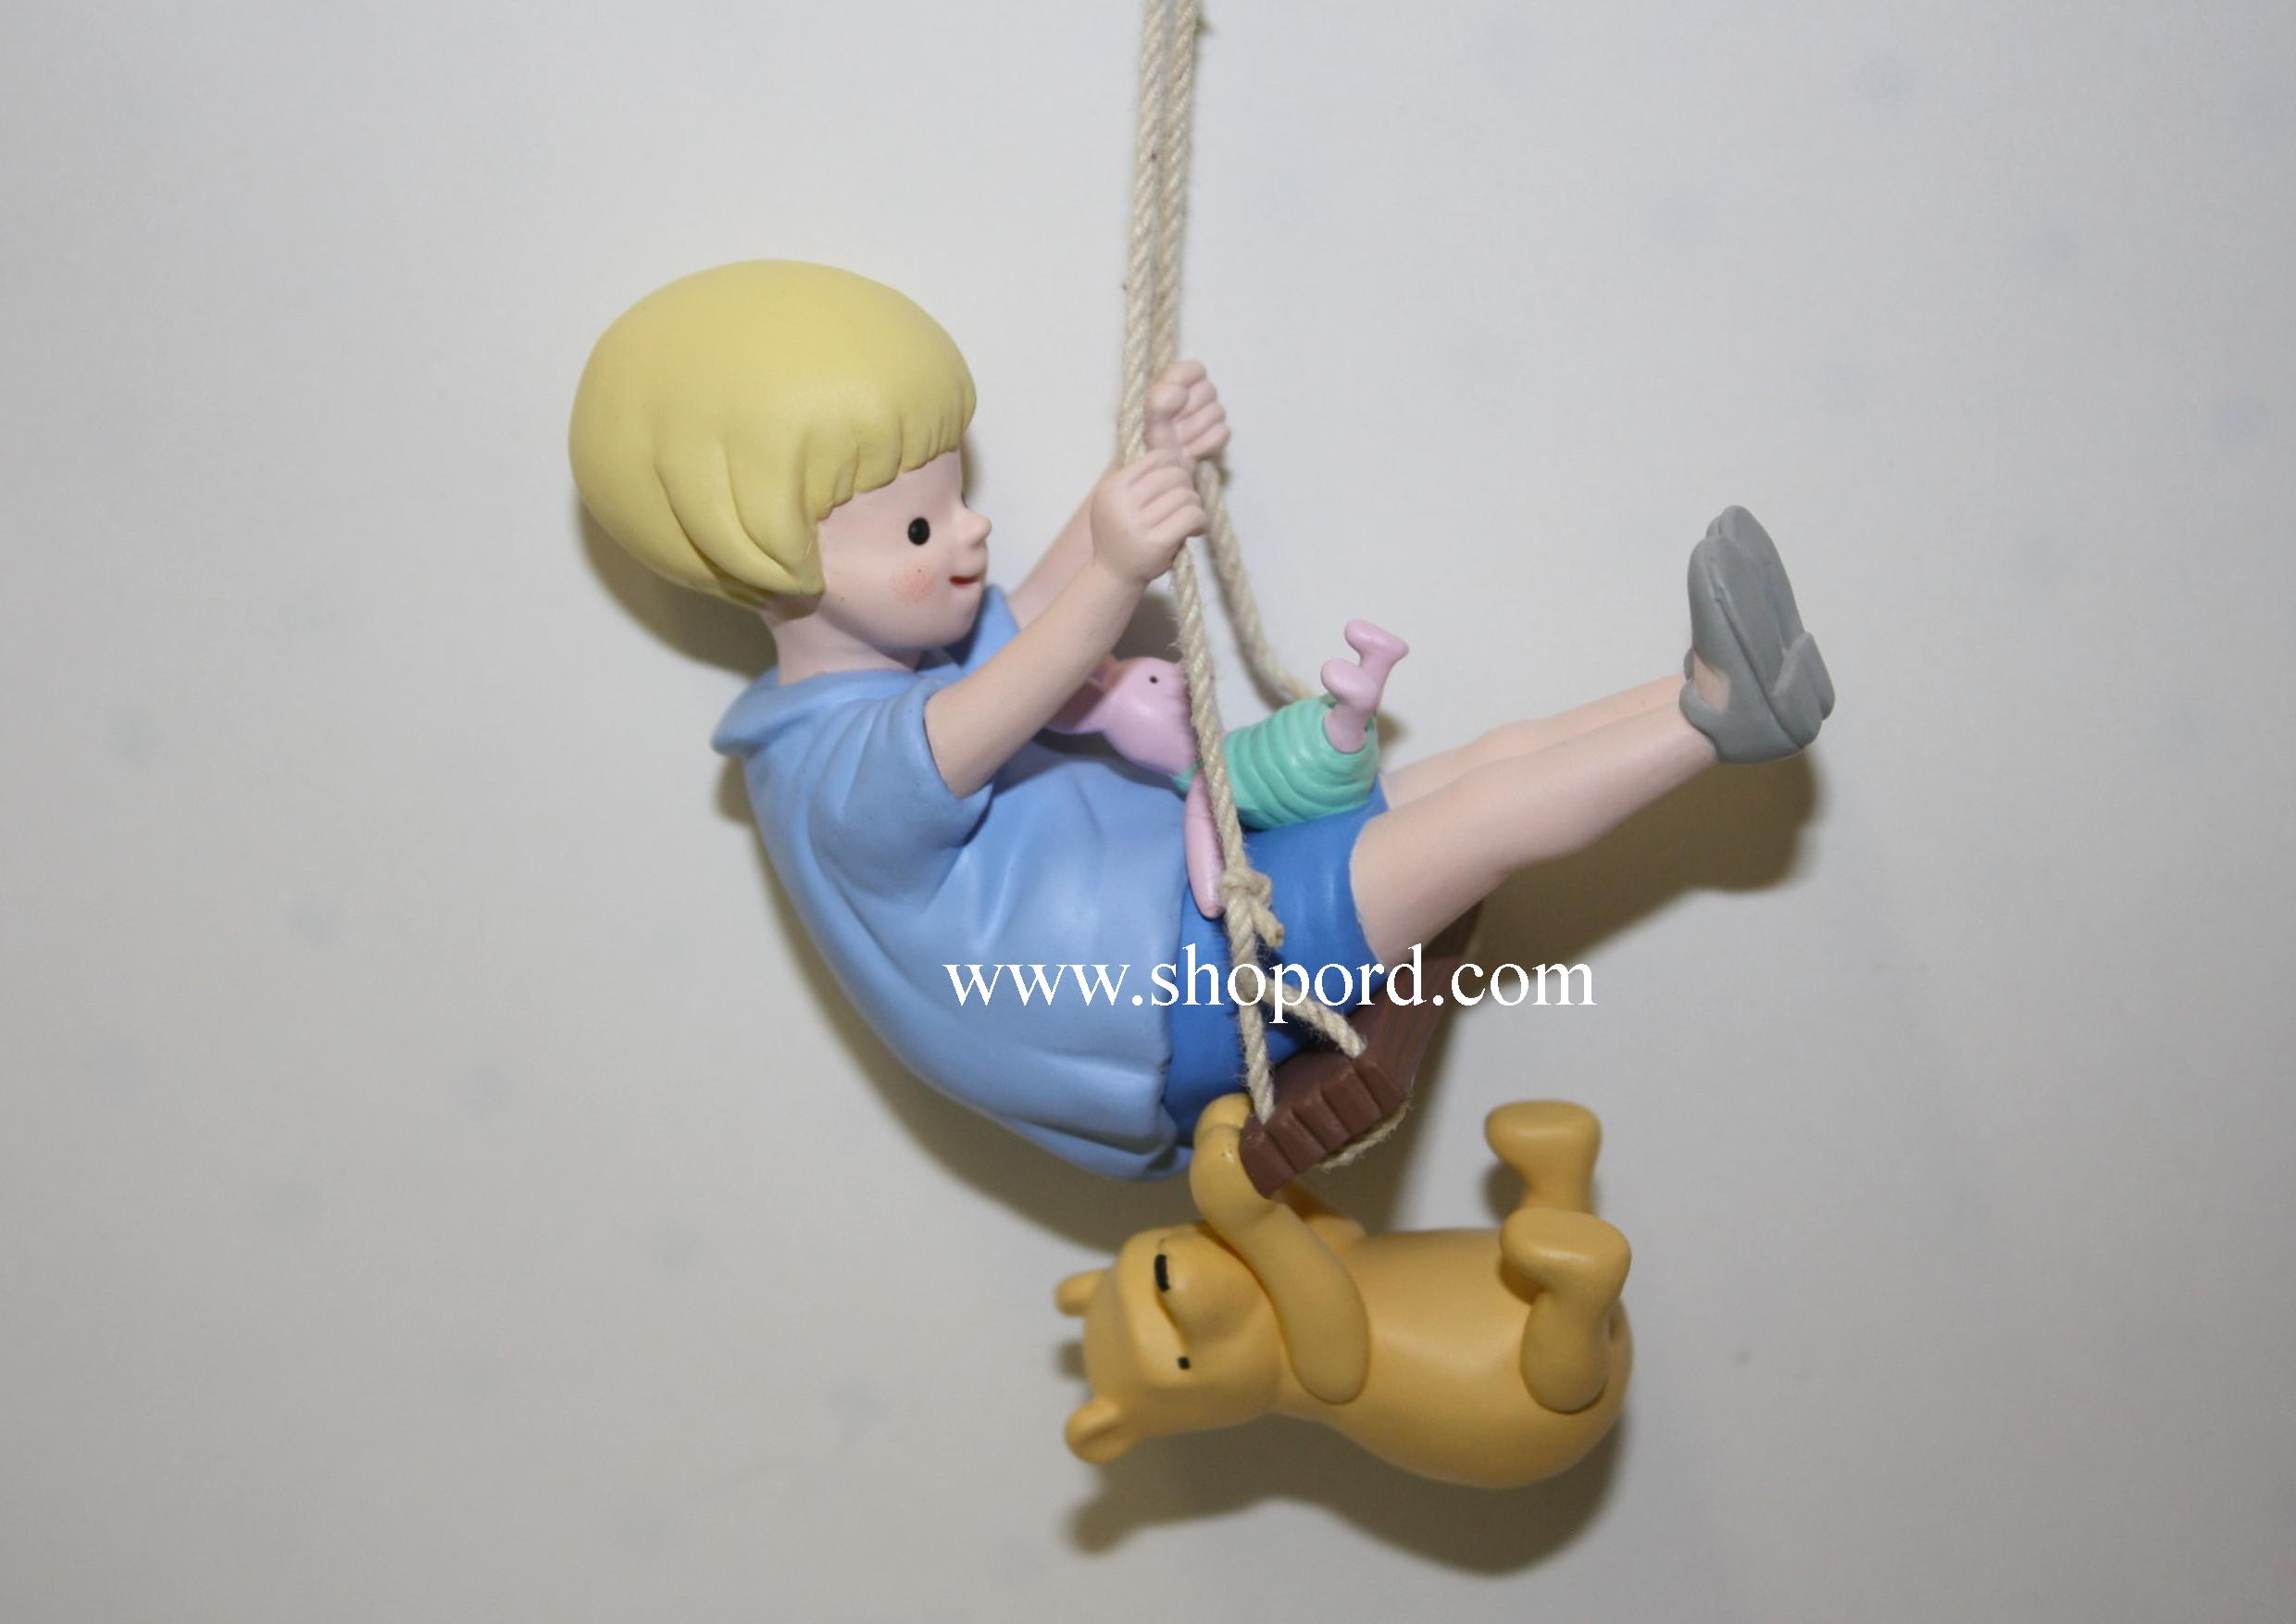 Hallmark 2000 A Swing With Friends Christopher Robin Classic Pooh Collection Disney Spring Ornament QEO8414